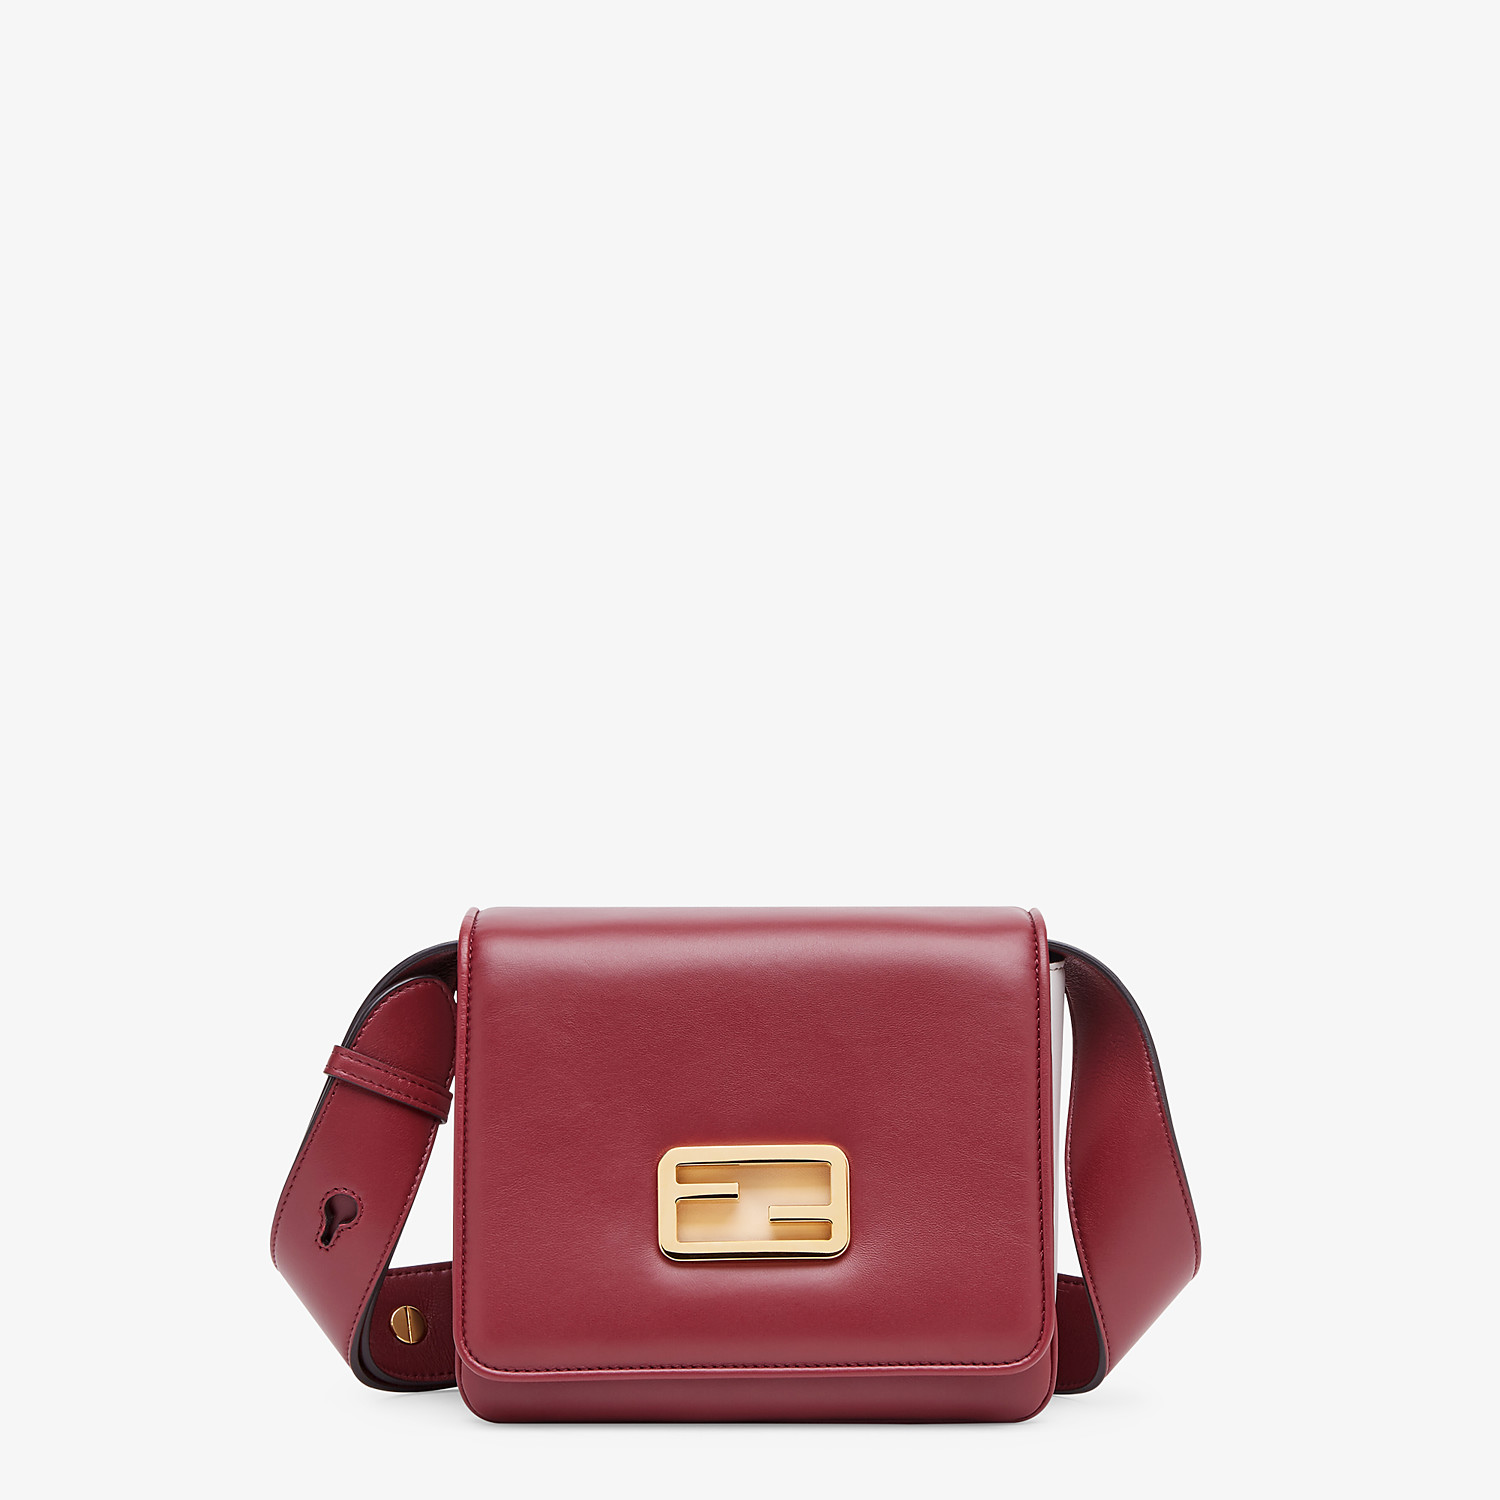 FENDI FENDI ID SMALL - Burgundy leather bag - view 1 detail